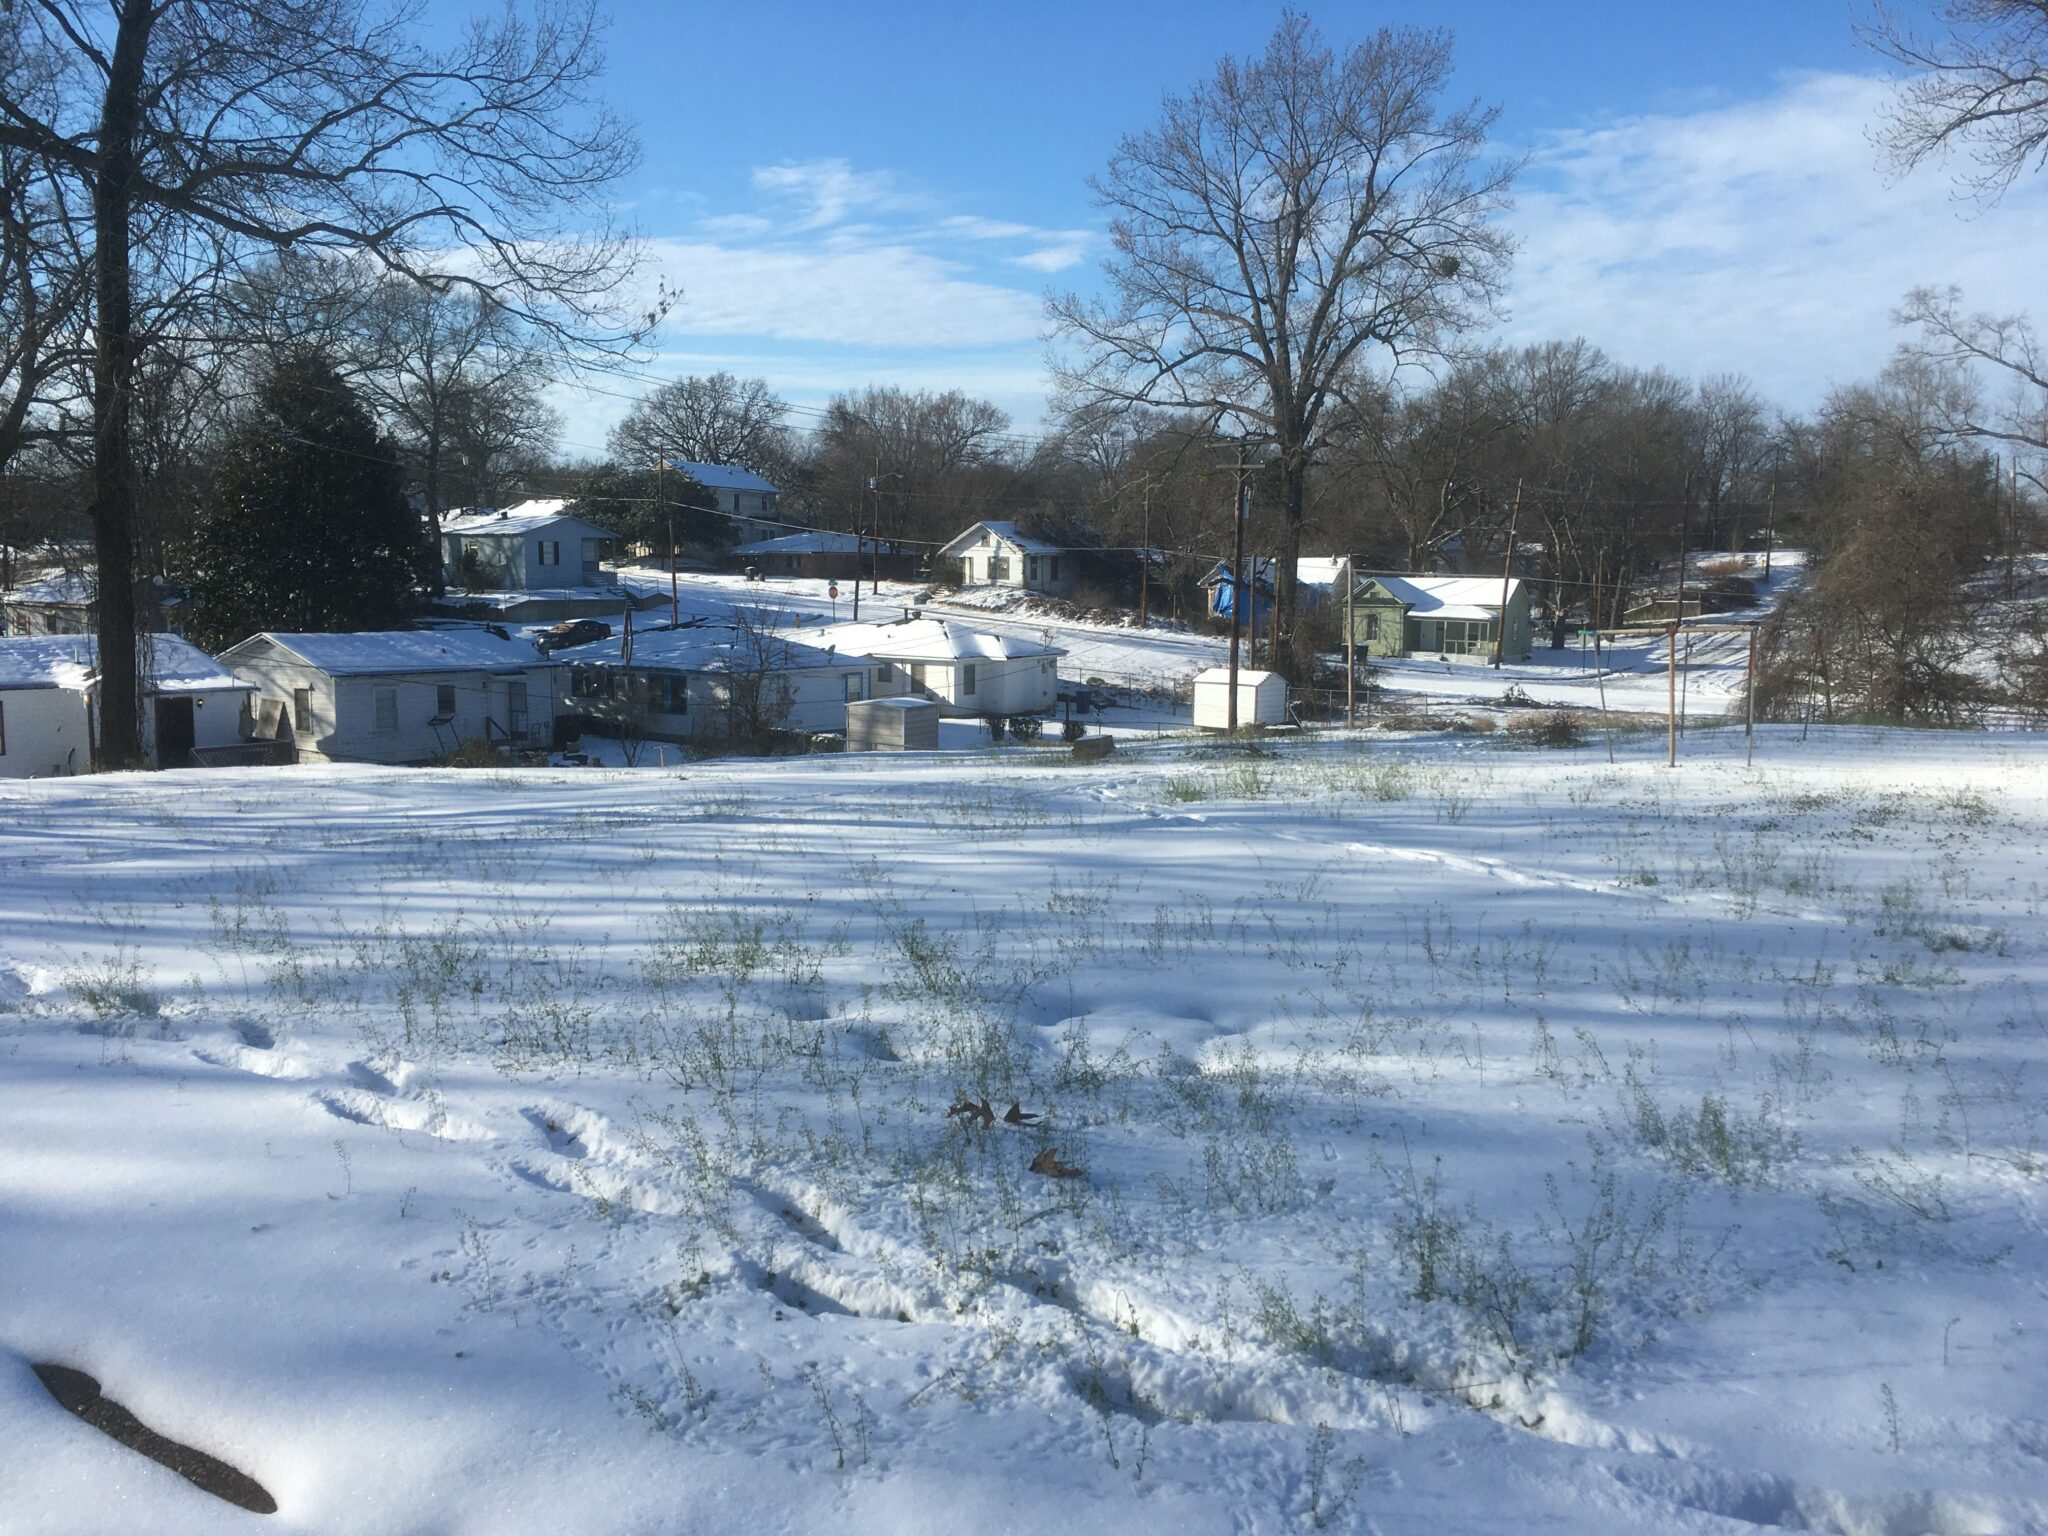 A Snowpocalypse in Shreveport